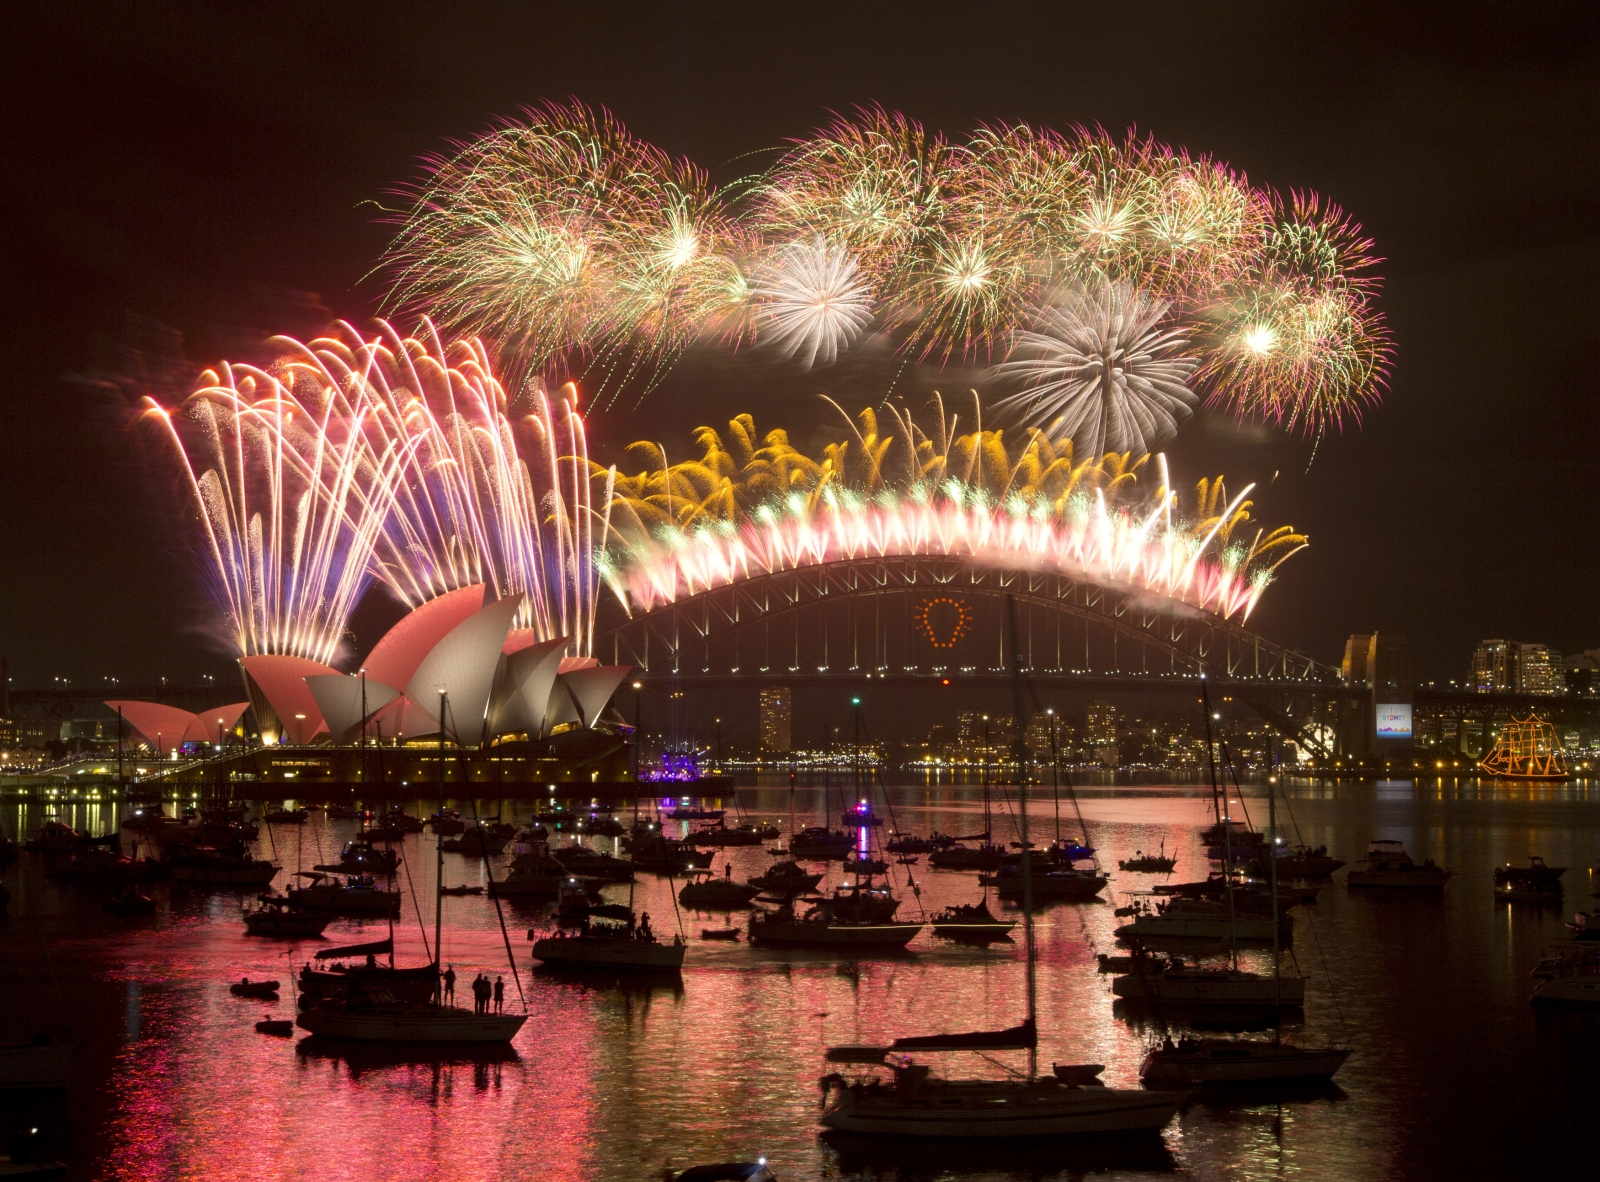 Australia ushers in New Year with spectacular Sydney fireworks